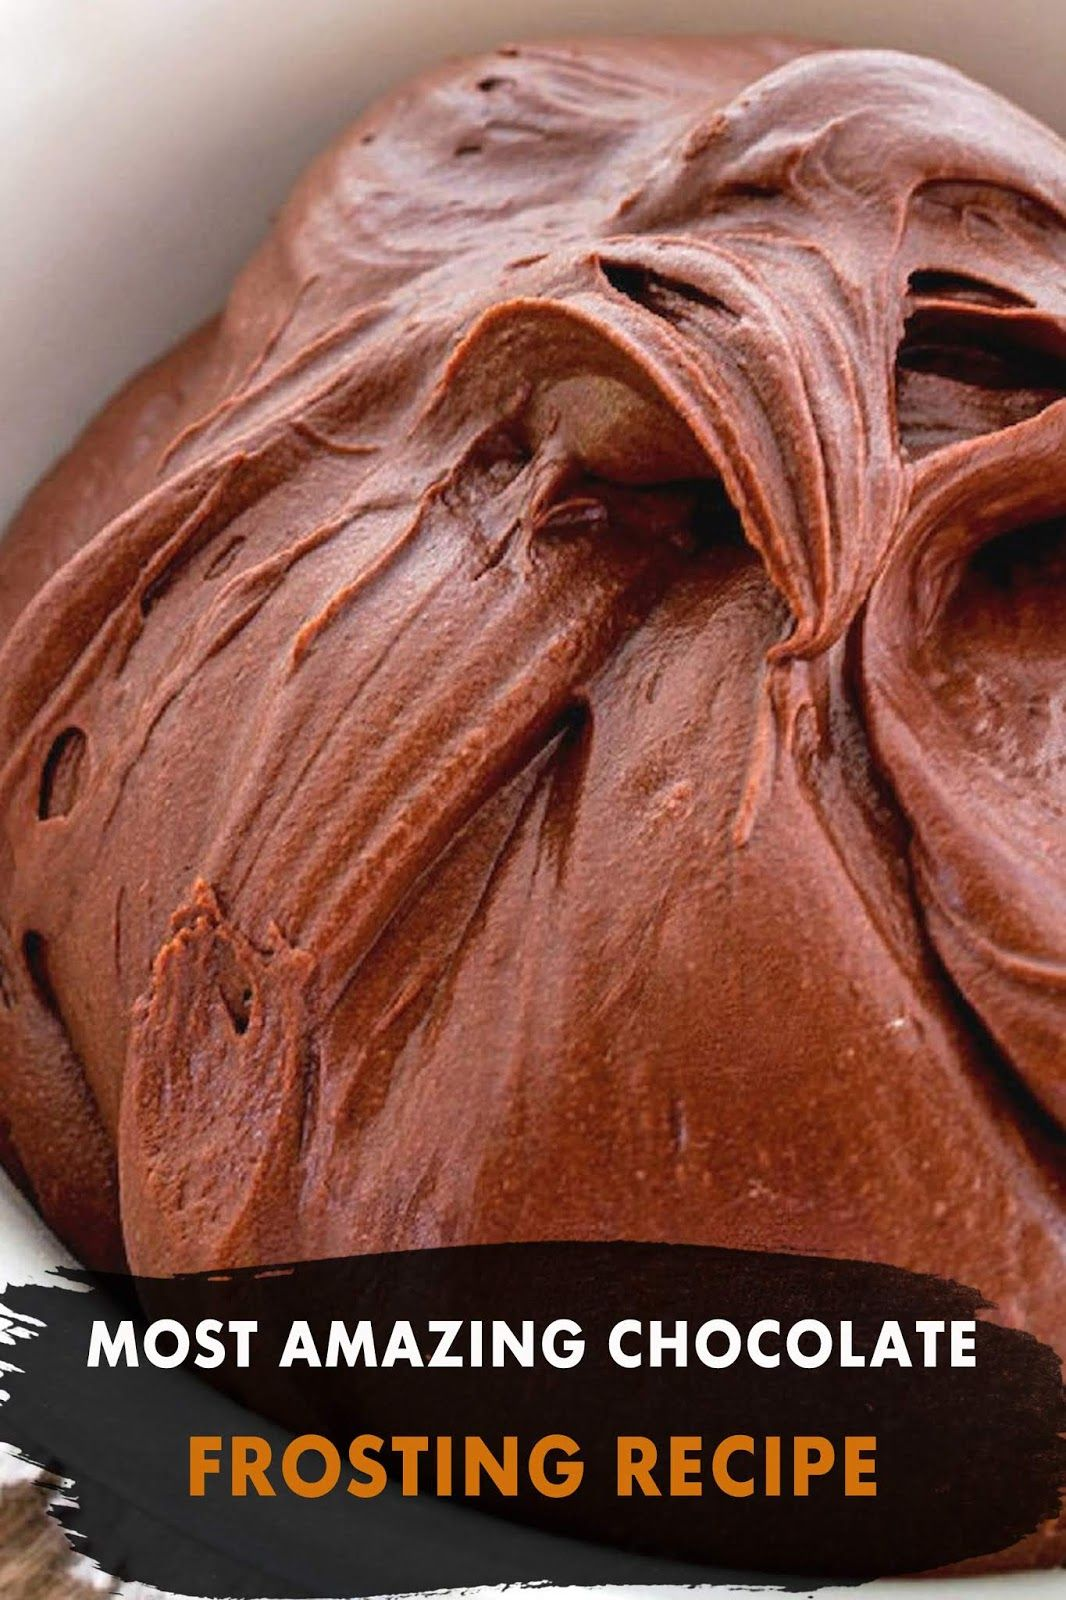 MOST AMAZING CHOCOLATE FROSTING RECIPE in 2020 Chocolate